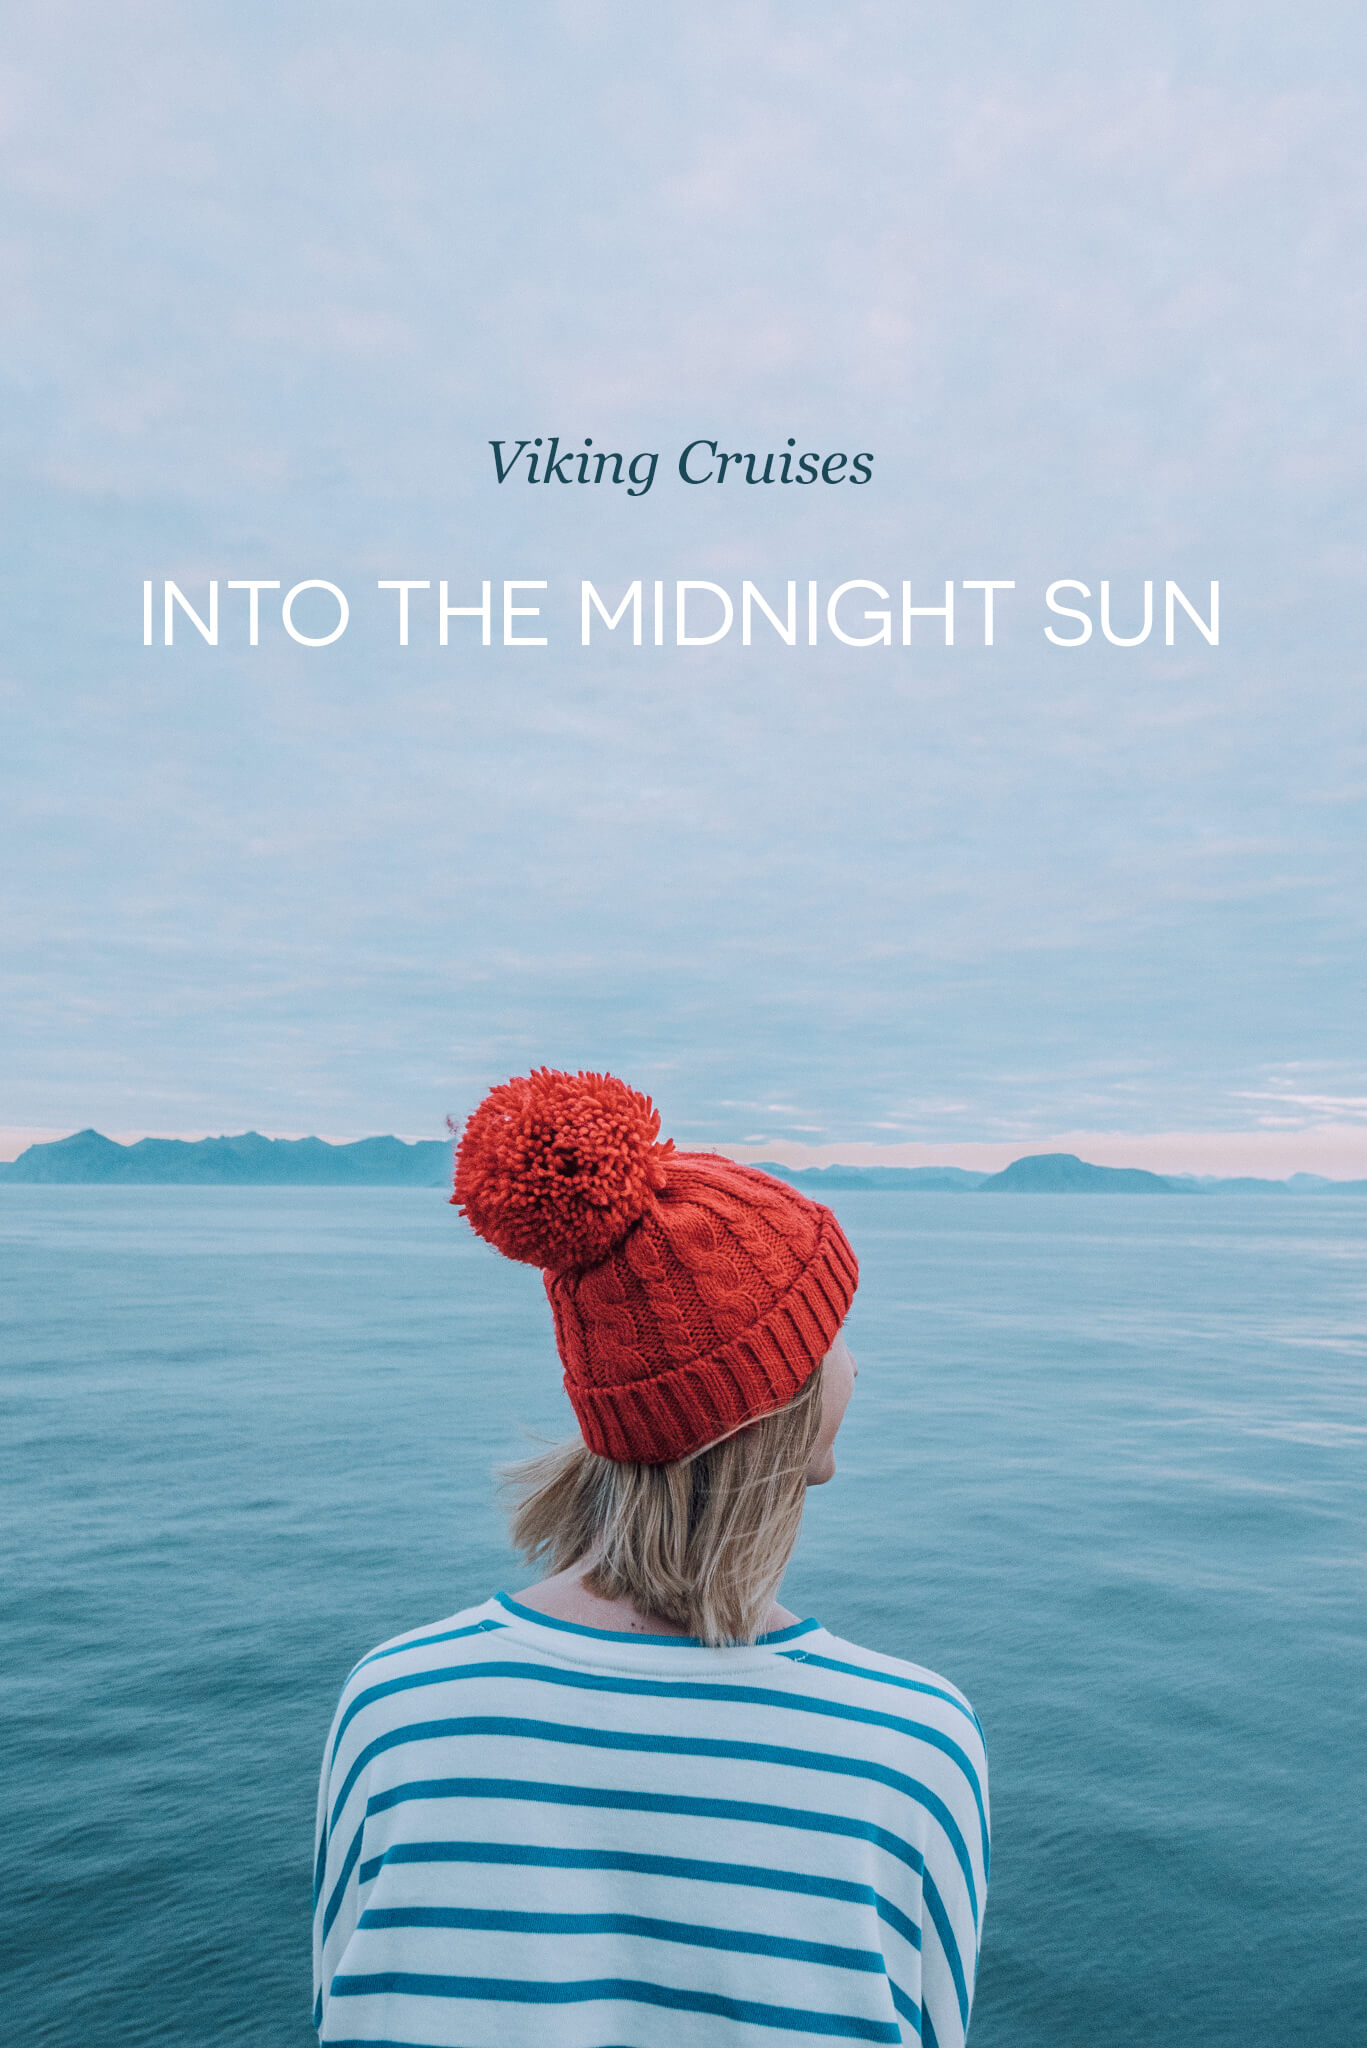 VikingCruises-IntoTheMidnightSun-review.jpg